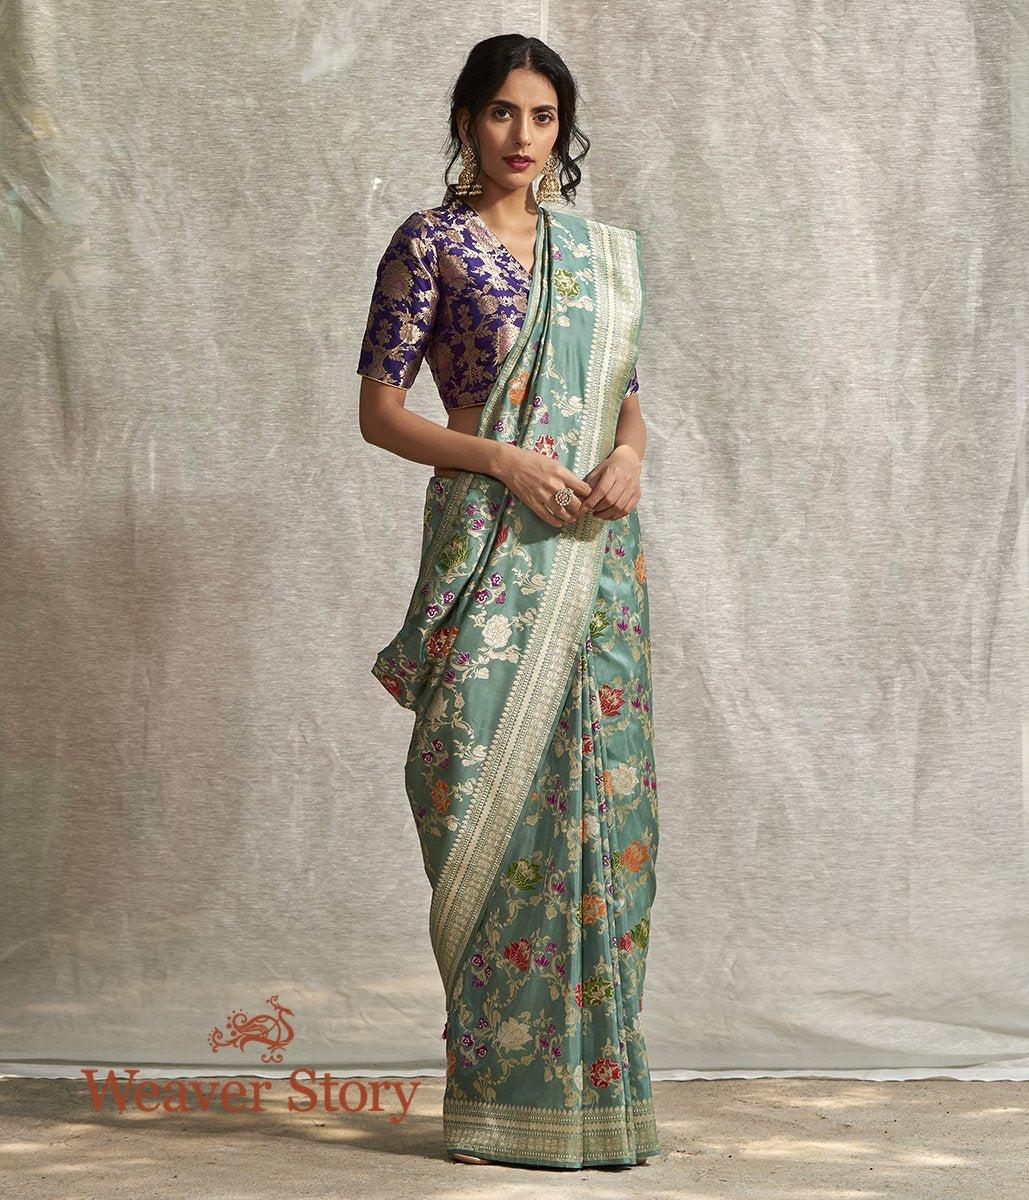 Handwoven Sage Green Banarasi Saree with Meenakari Jaal